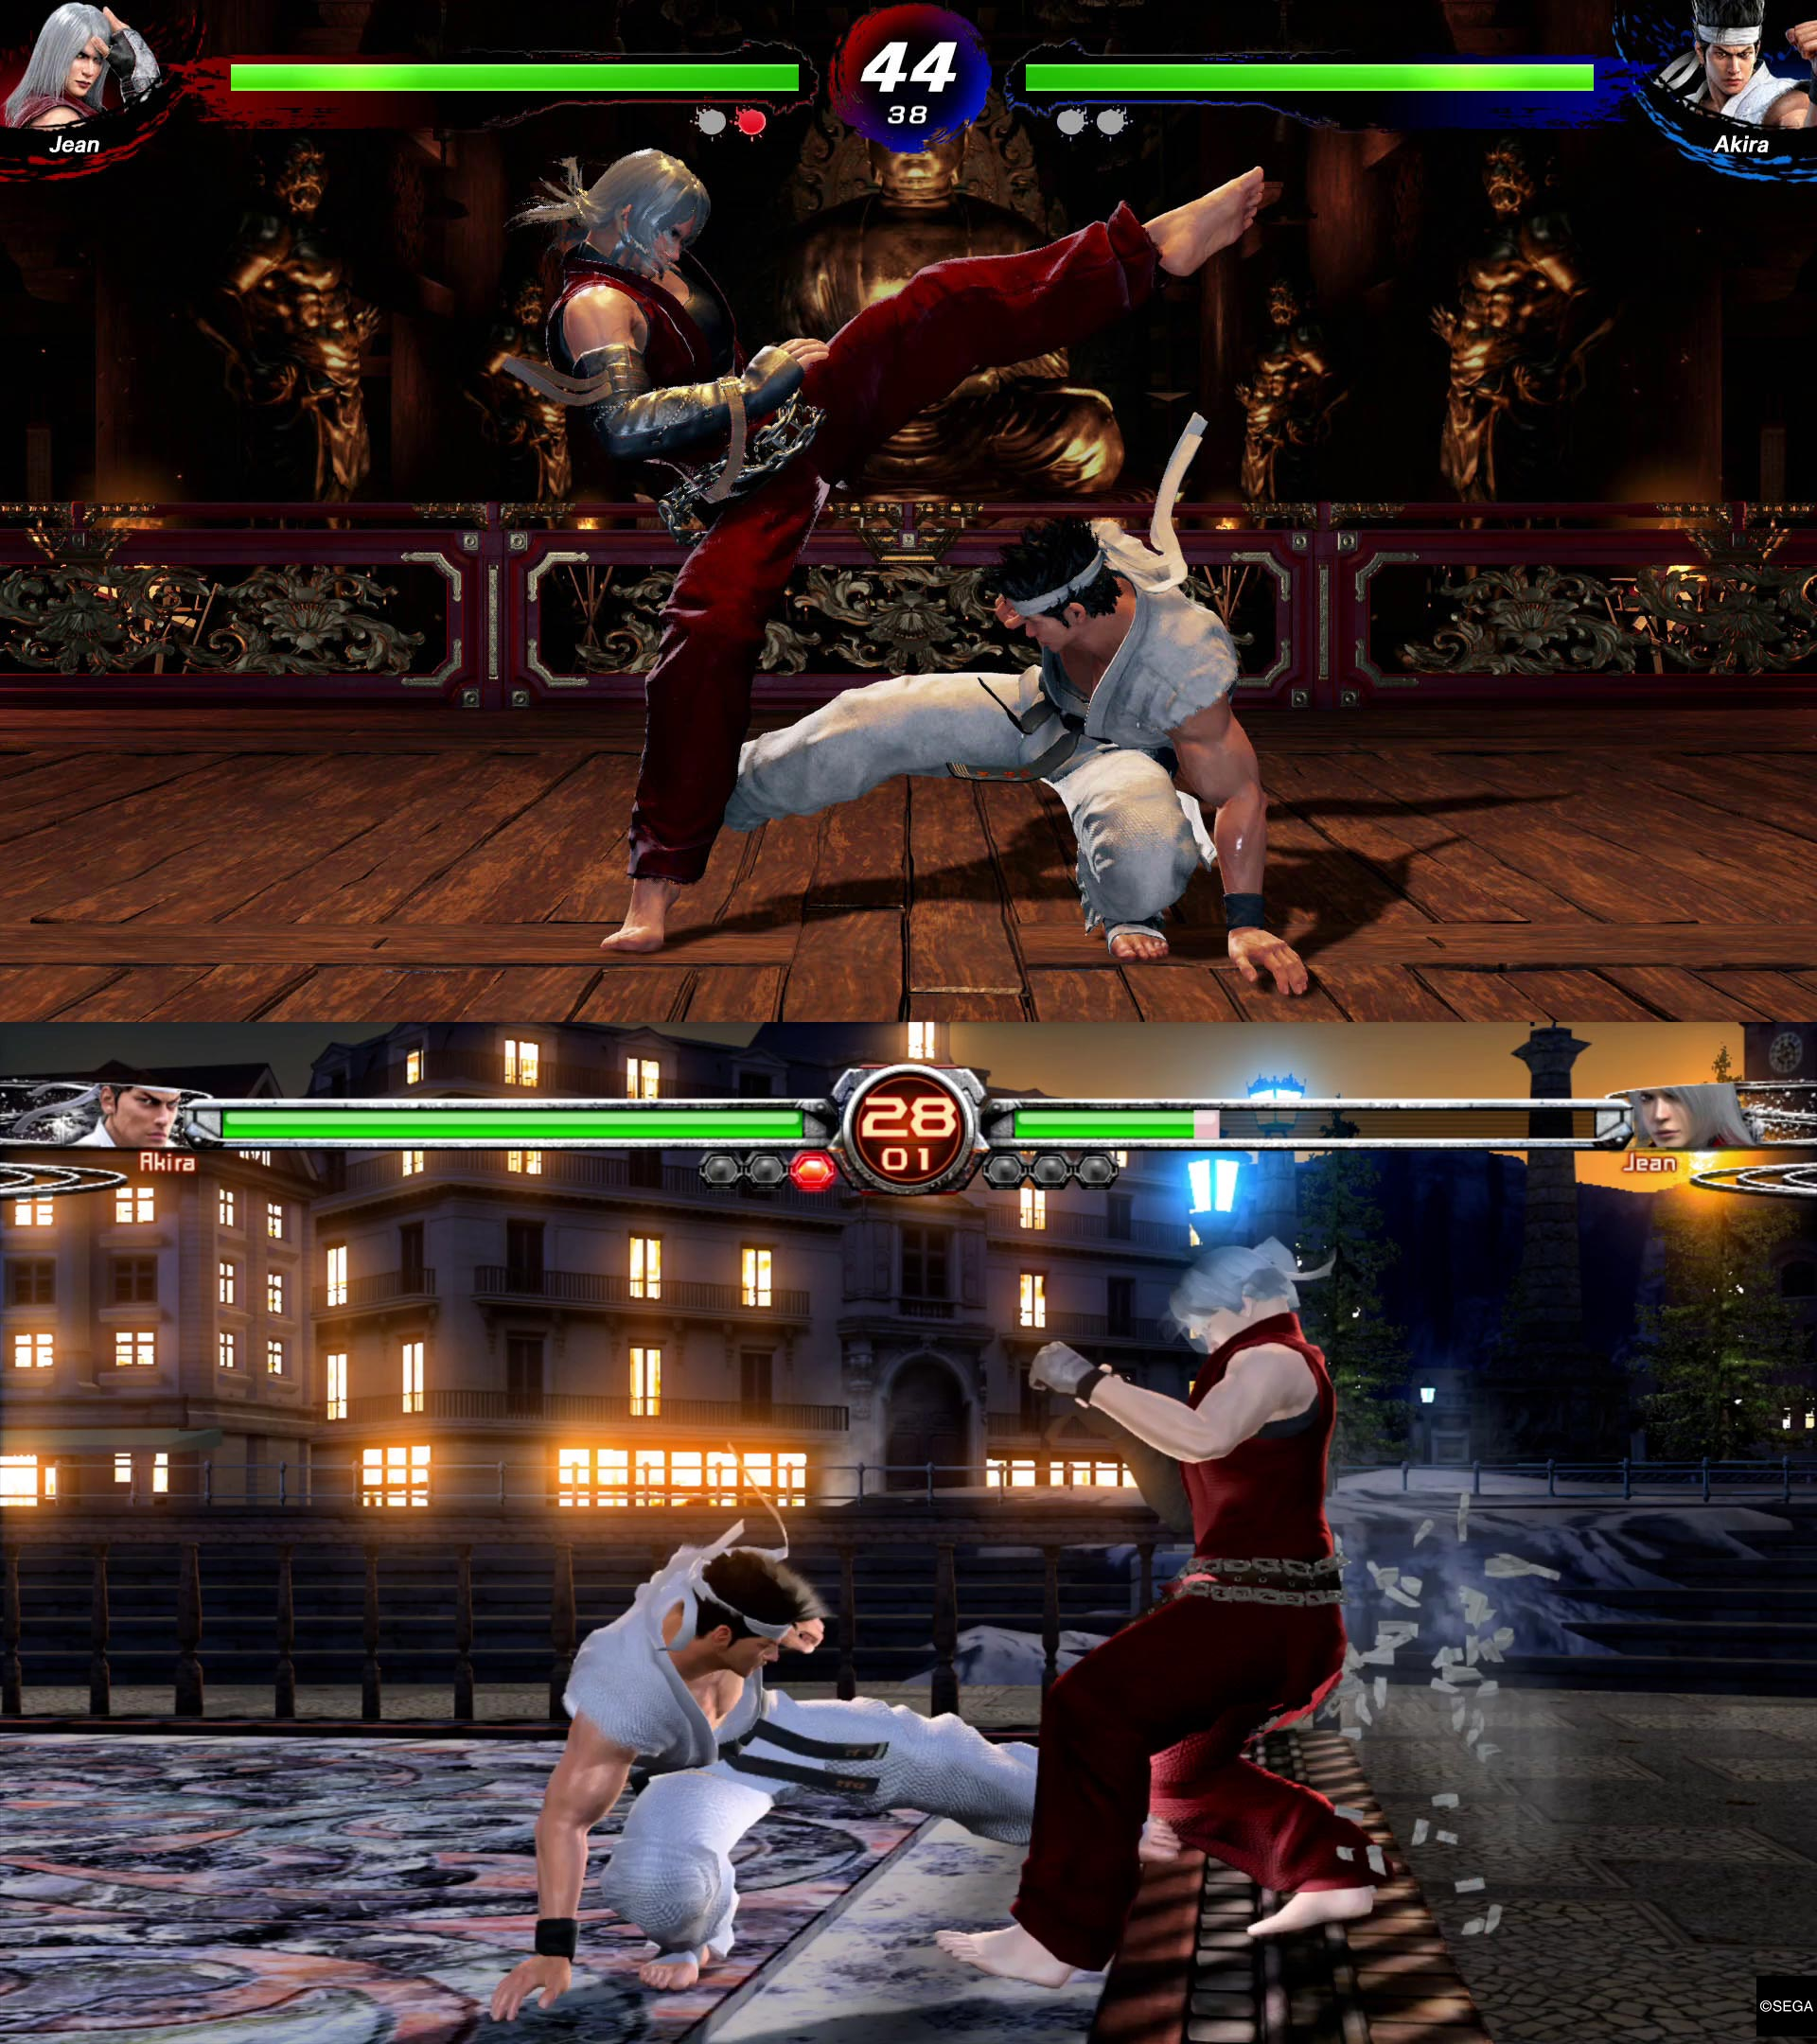 Virtua Fighter 5 graphics comparison 2 out of 5 image gallery